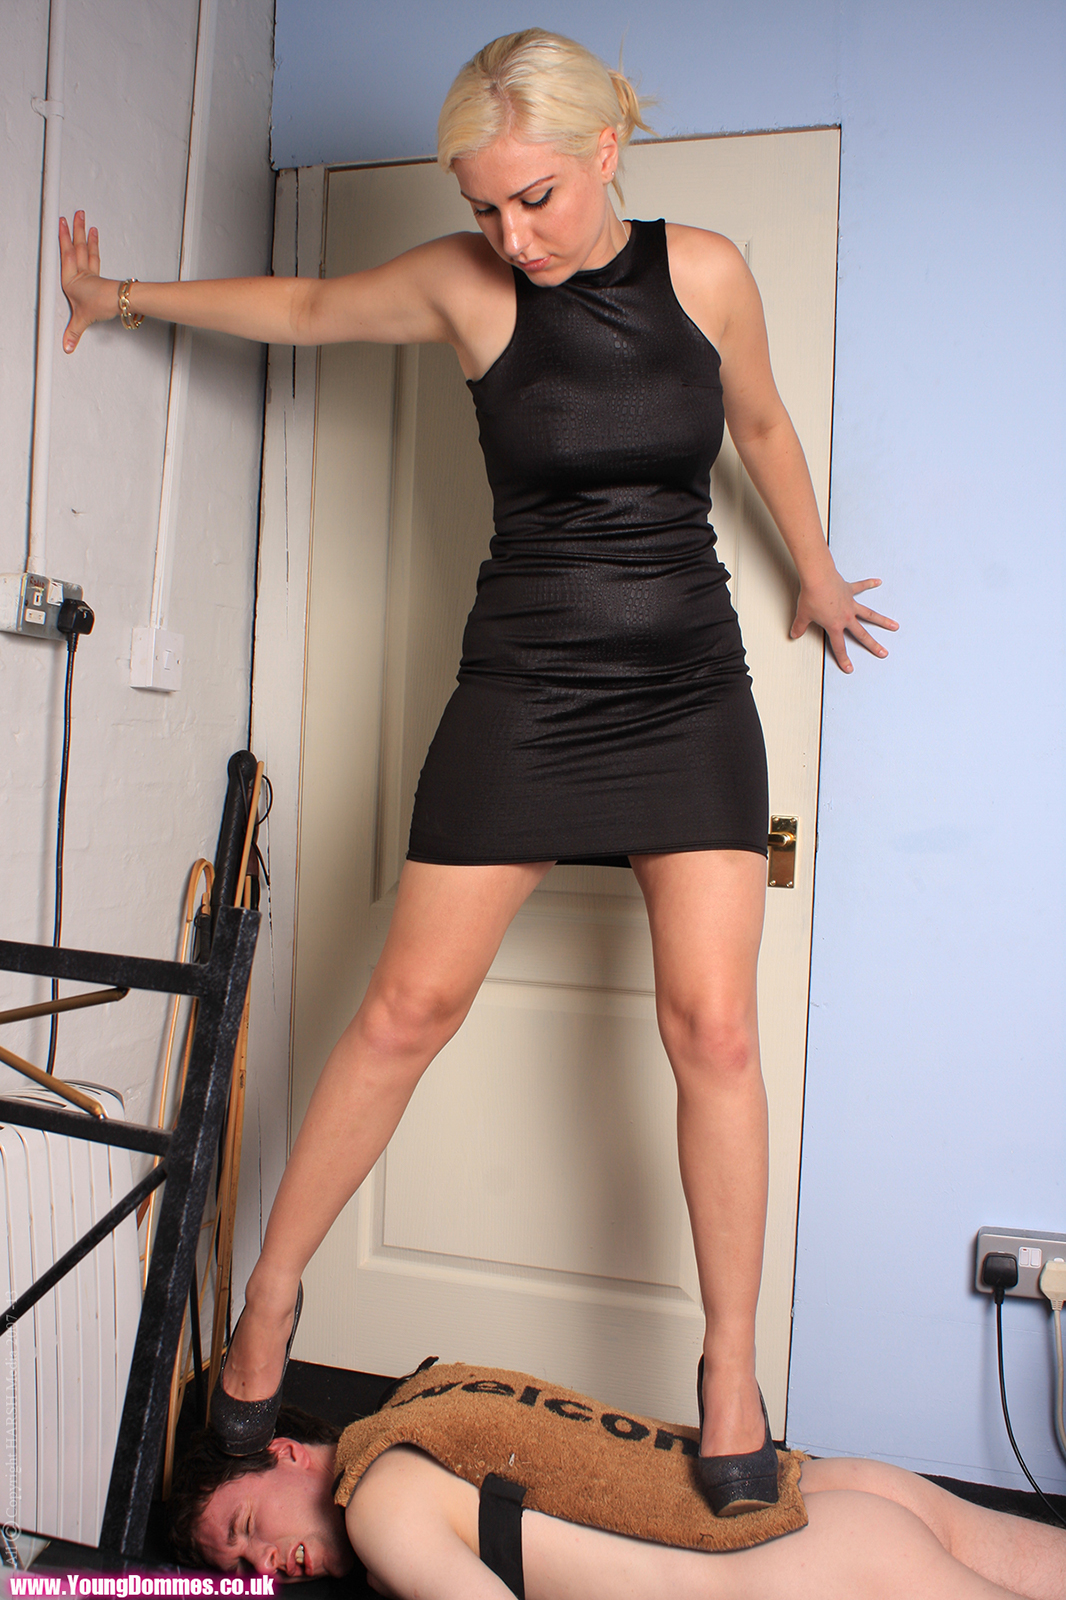 Femdom Gallery Archives | Page 5 of 17 | Young Dommes